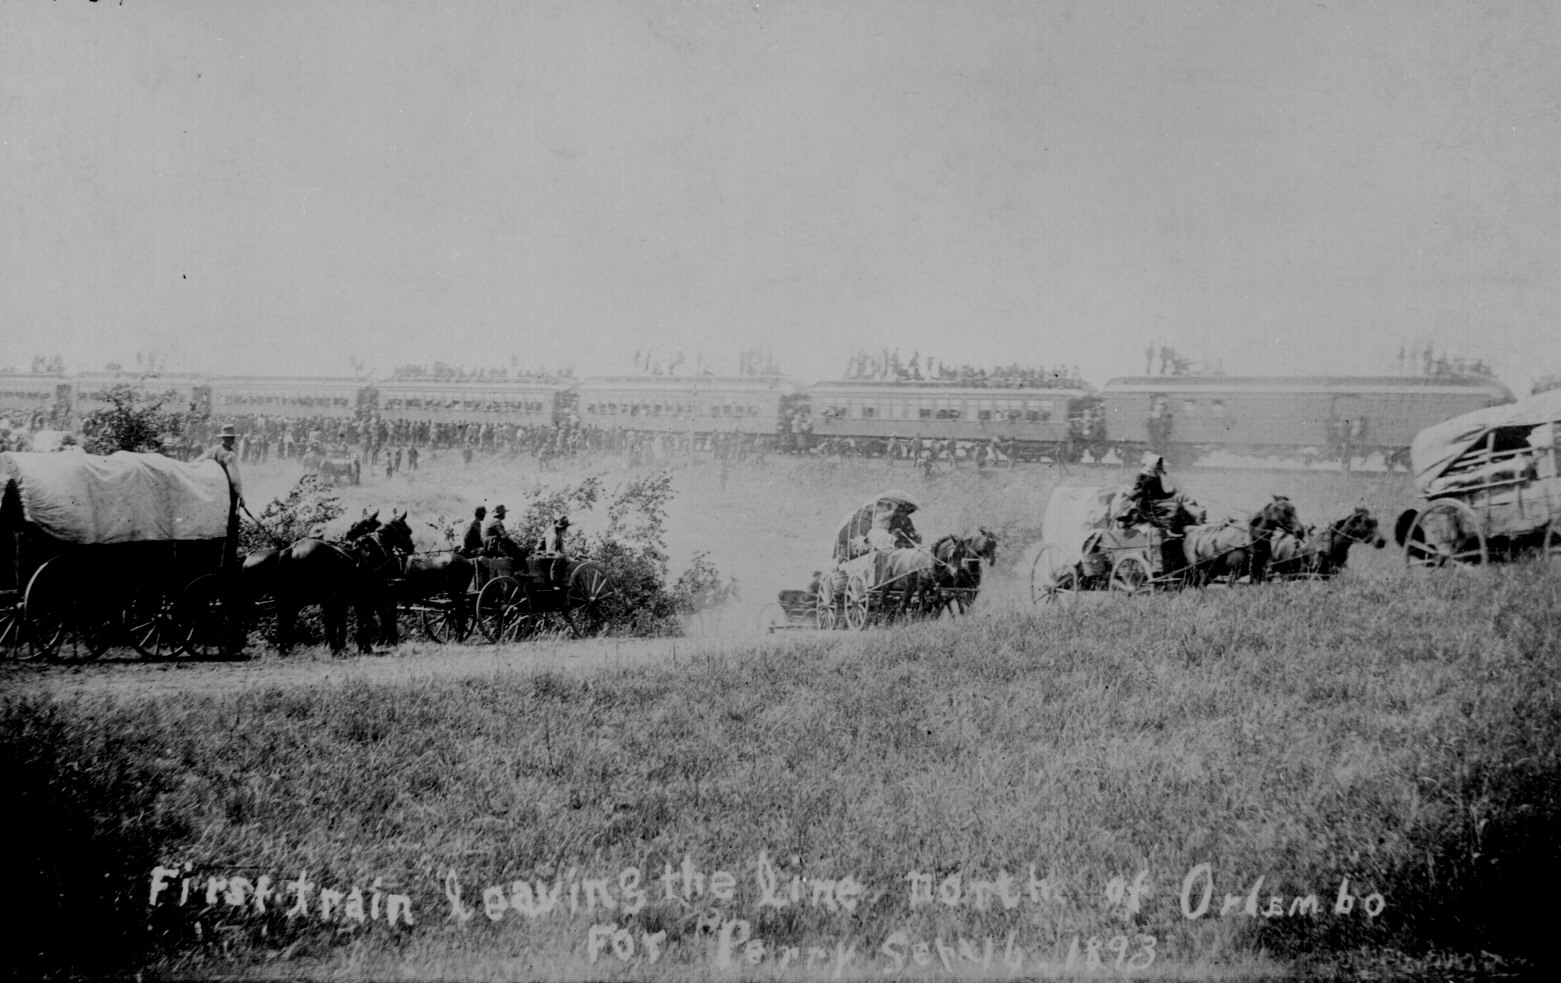 Oklahoma Land Rush Of 1889